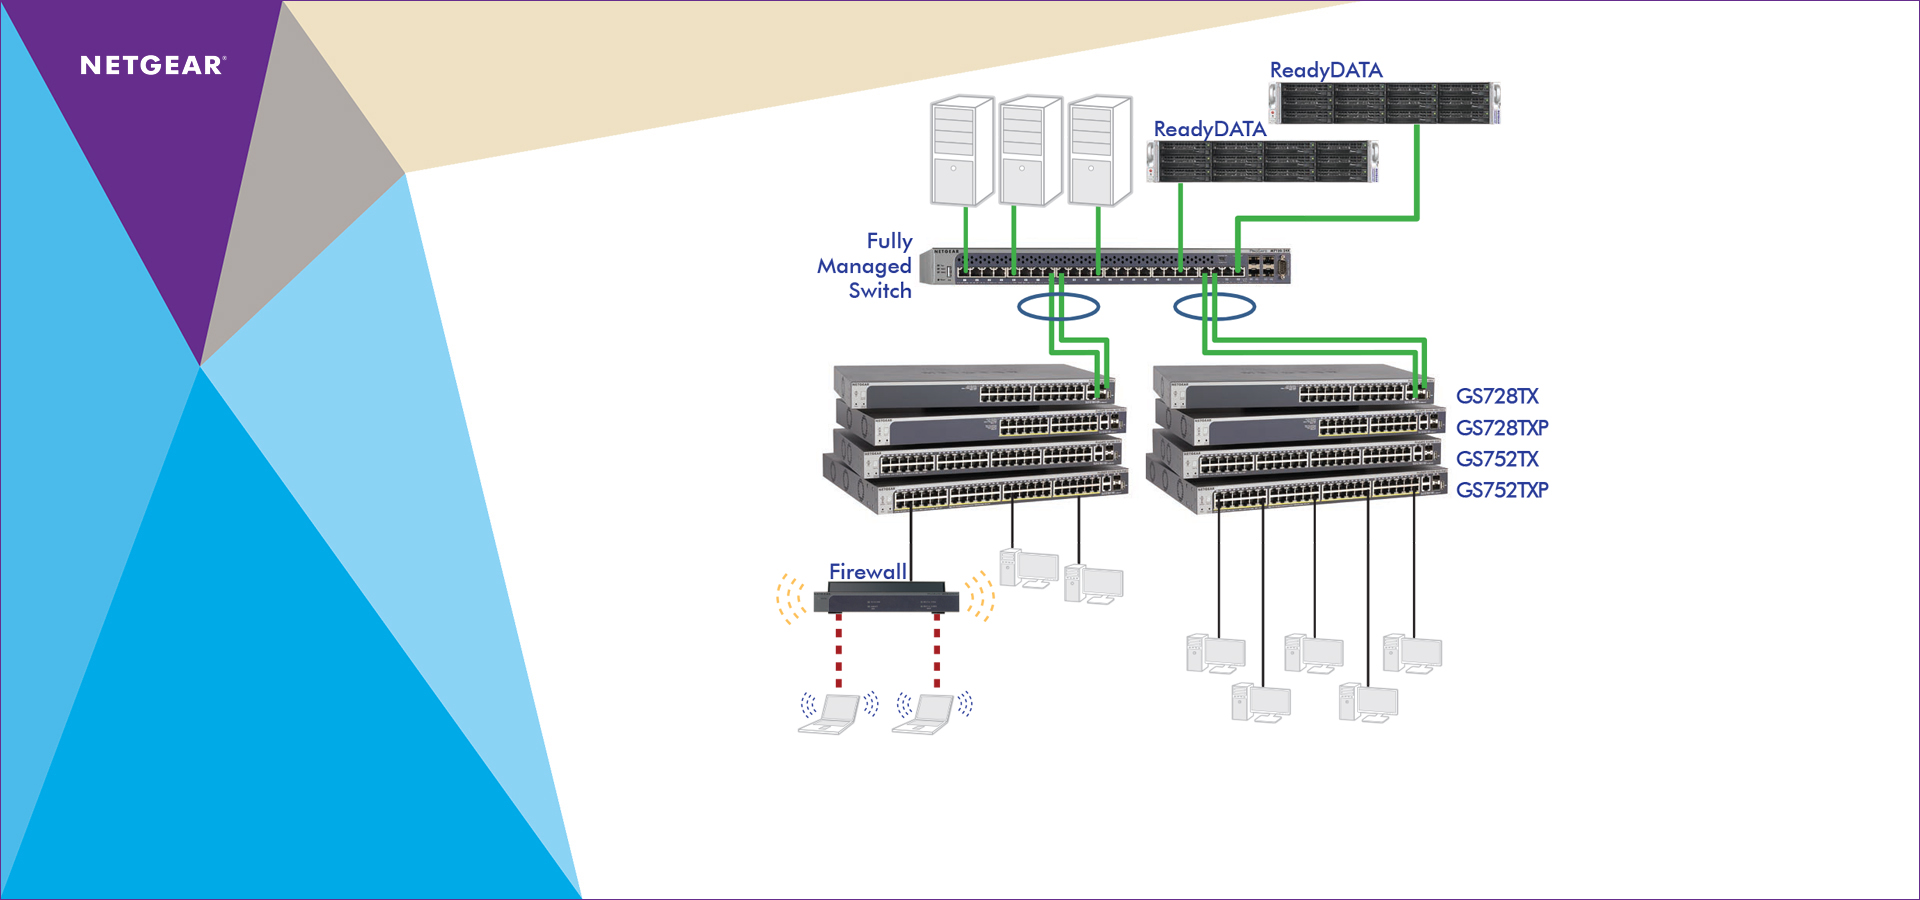 NETGEAR Switches and Servers